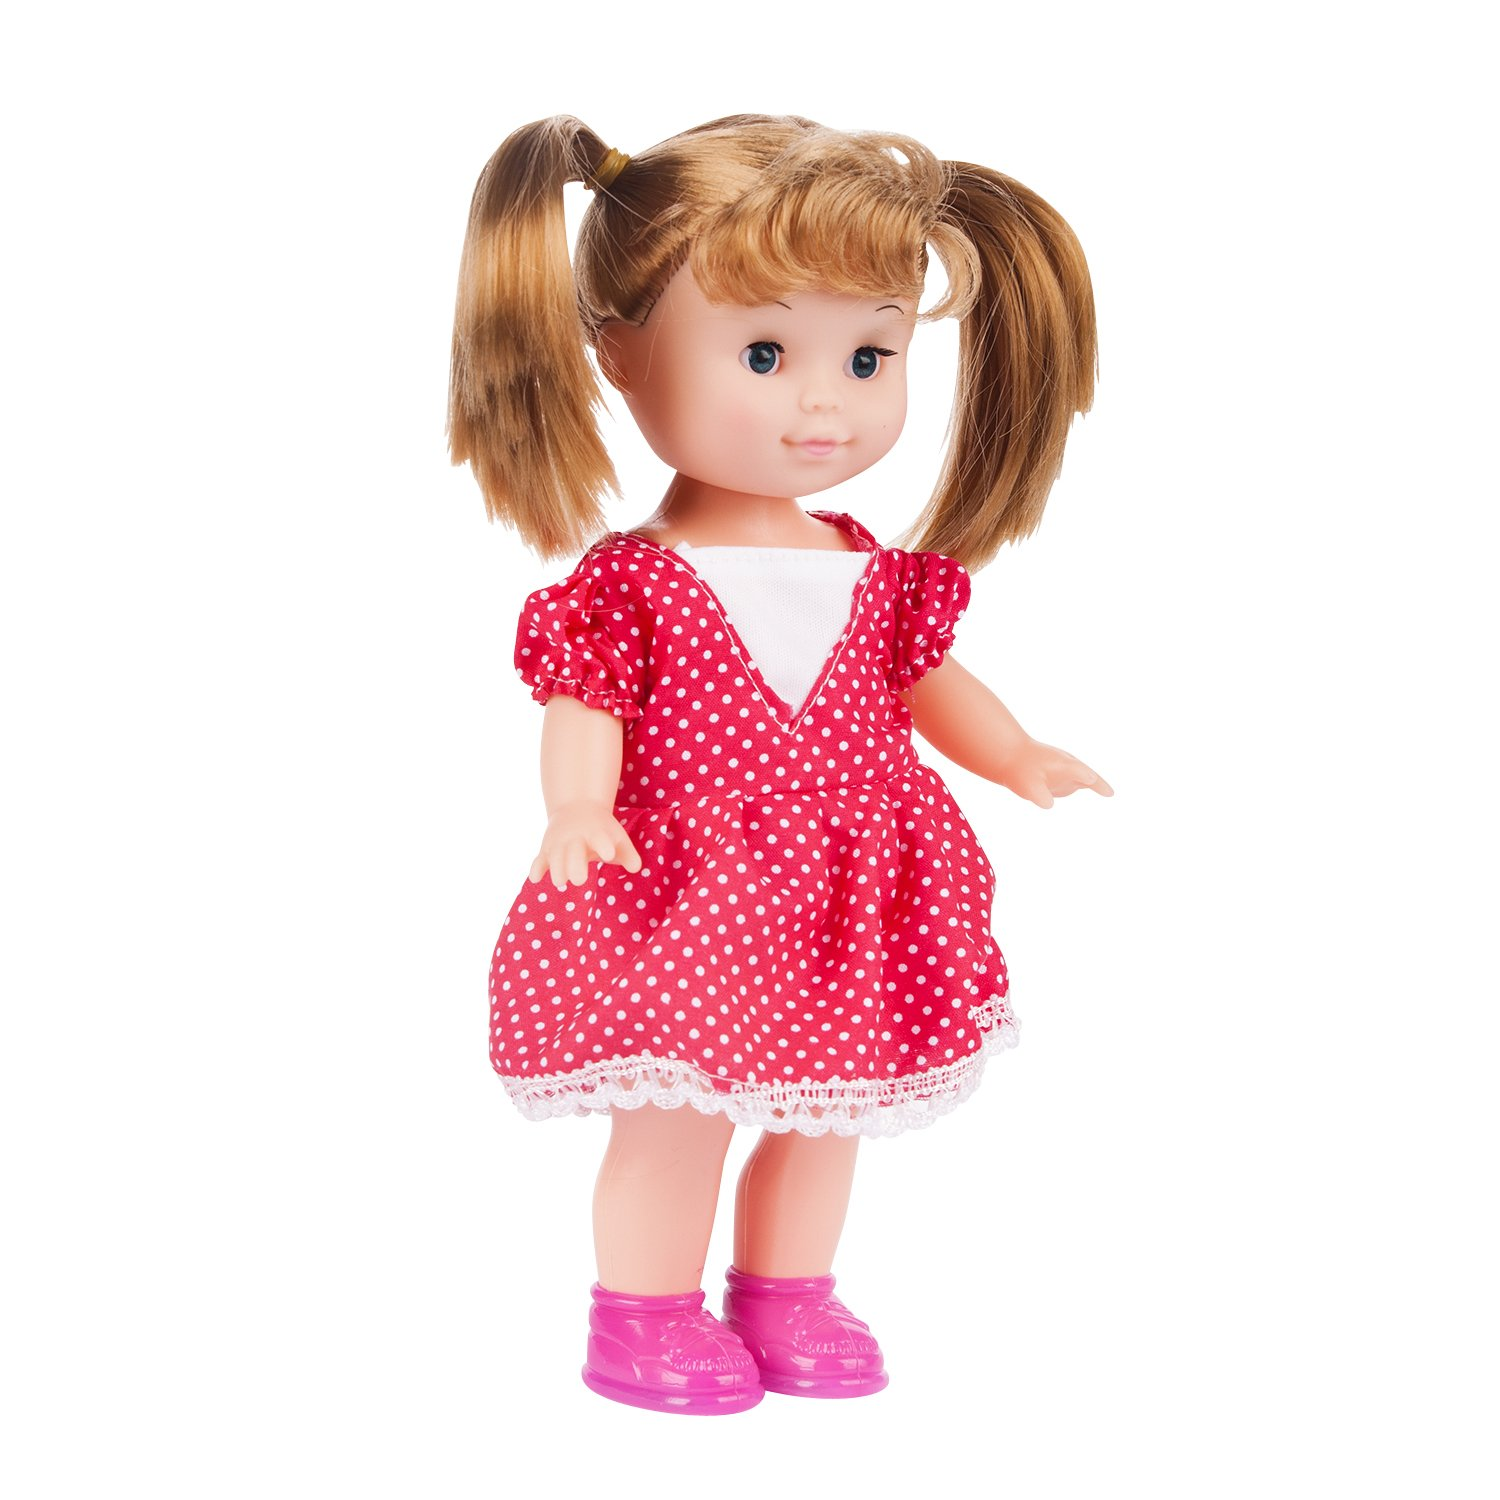 Vinyl Body Baby Doll with Hair and Outfit Little Girl Fashion Doll Set Pink Doll for Little Girls Pink Fashion Doll Birthday Gift Huggable Snuggle Vinyl Toy Play Doll Purplecart